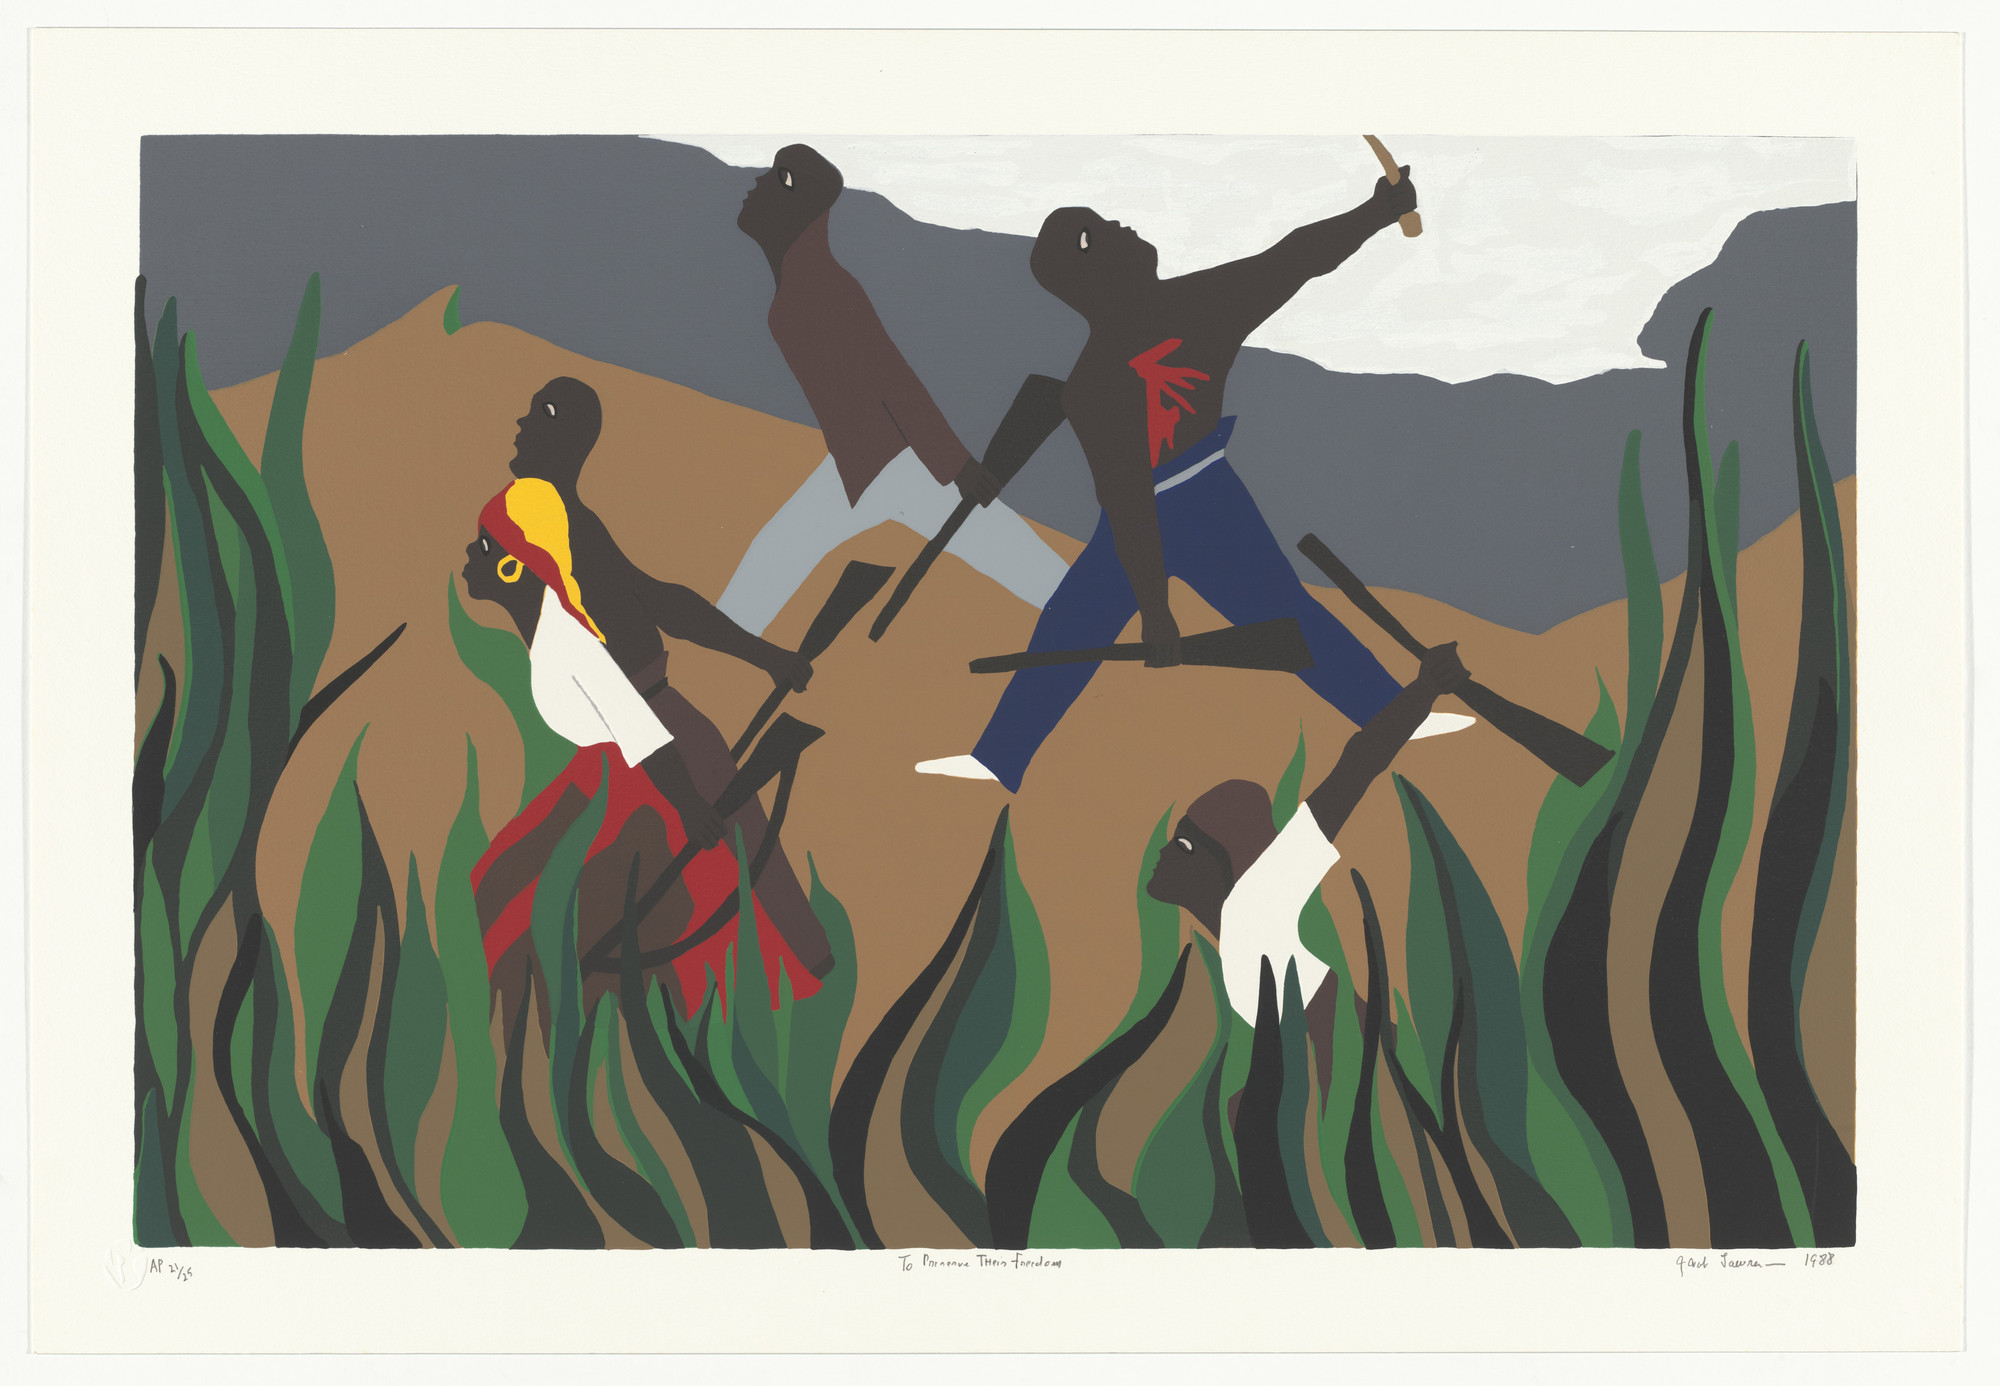 Jacob Lawrence. To Preserve Their Freedom from the series The Life of Toussaint L'Ouverture. 1988